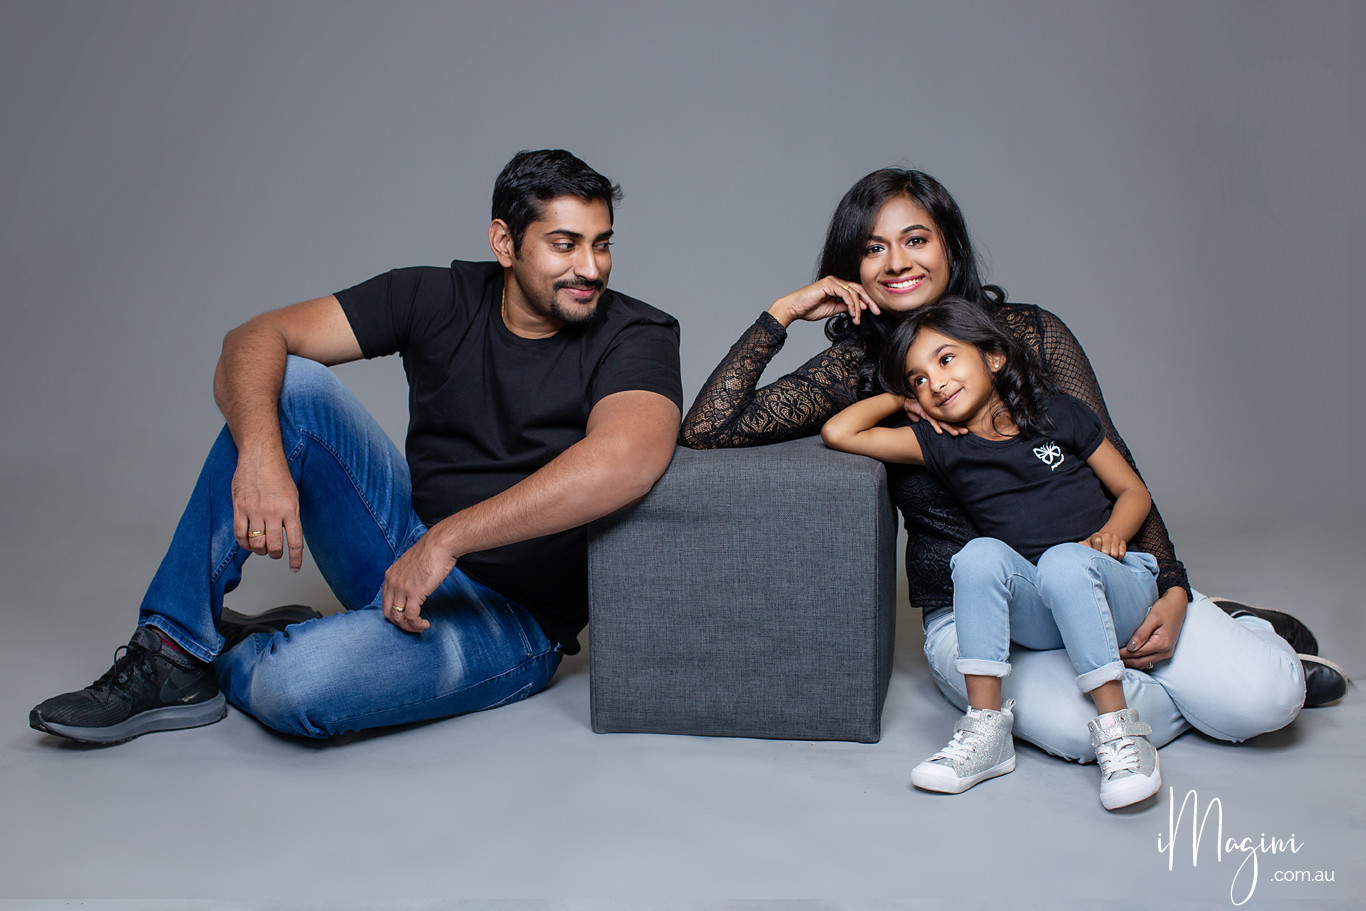 20190721_Neethu Family_018 copy.jpg